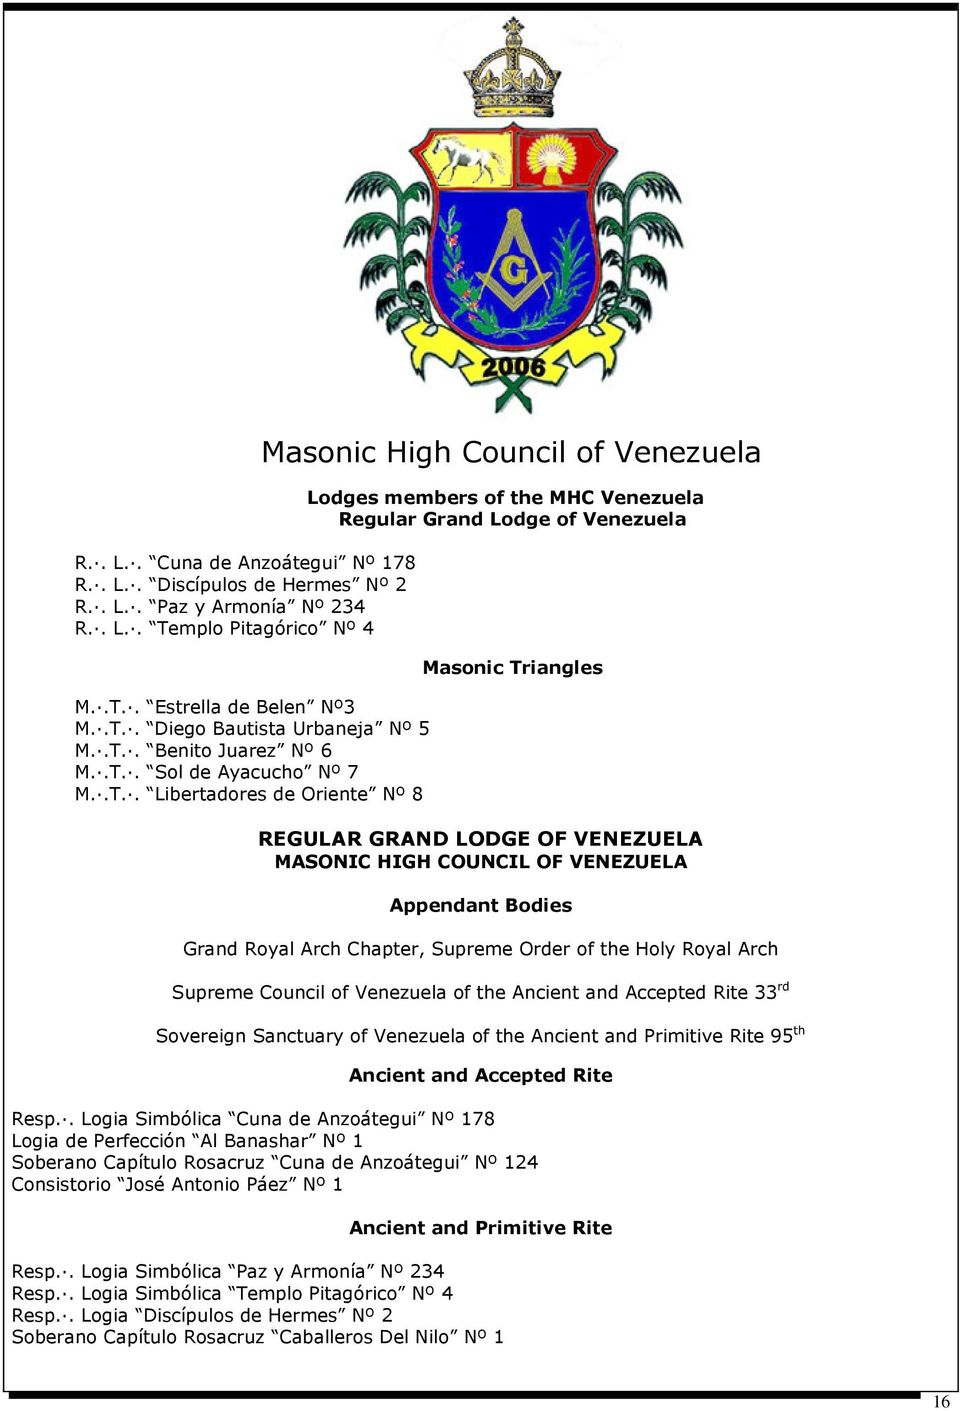 LODGE OF VENEZUELA MASONIC HIGH COUNCIL OF VENEZUELA Appendant Bodies Grand Royal Arch Chapter, Supreme Order of the Holy Royal Arch Supreme Council of Venezuela of the Ancient and Accepted Rite 33